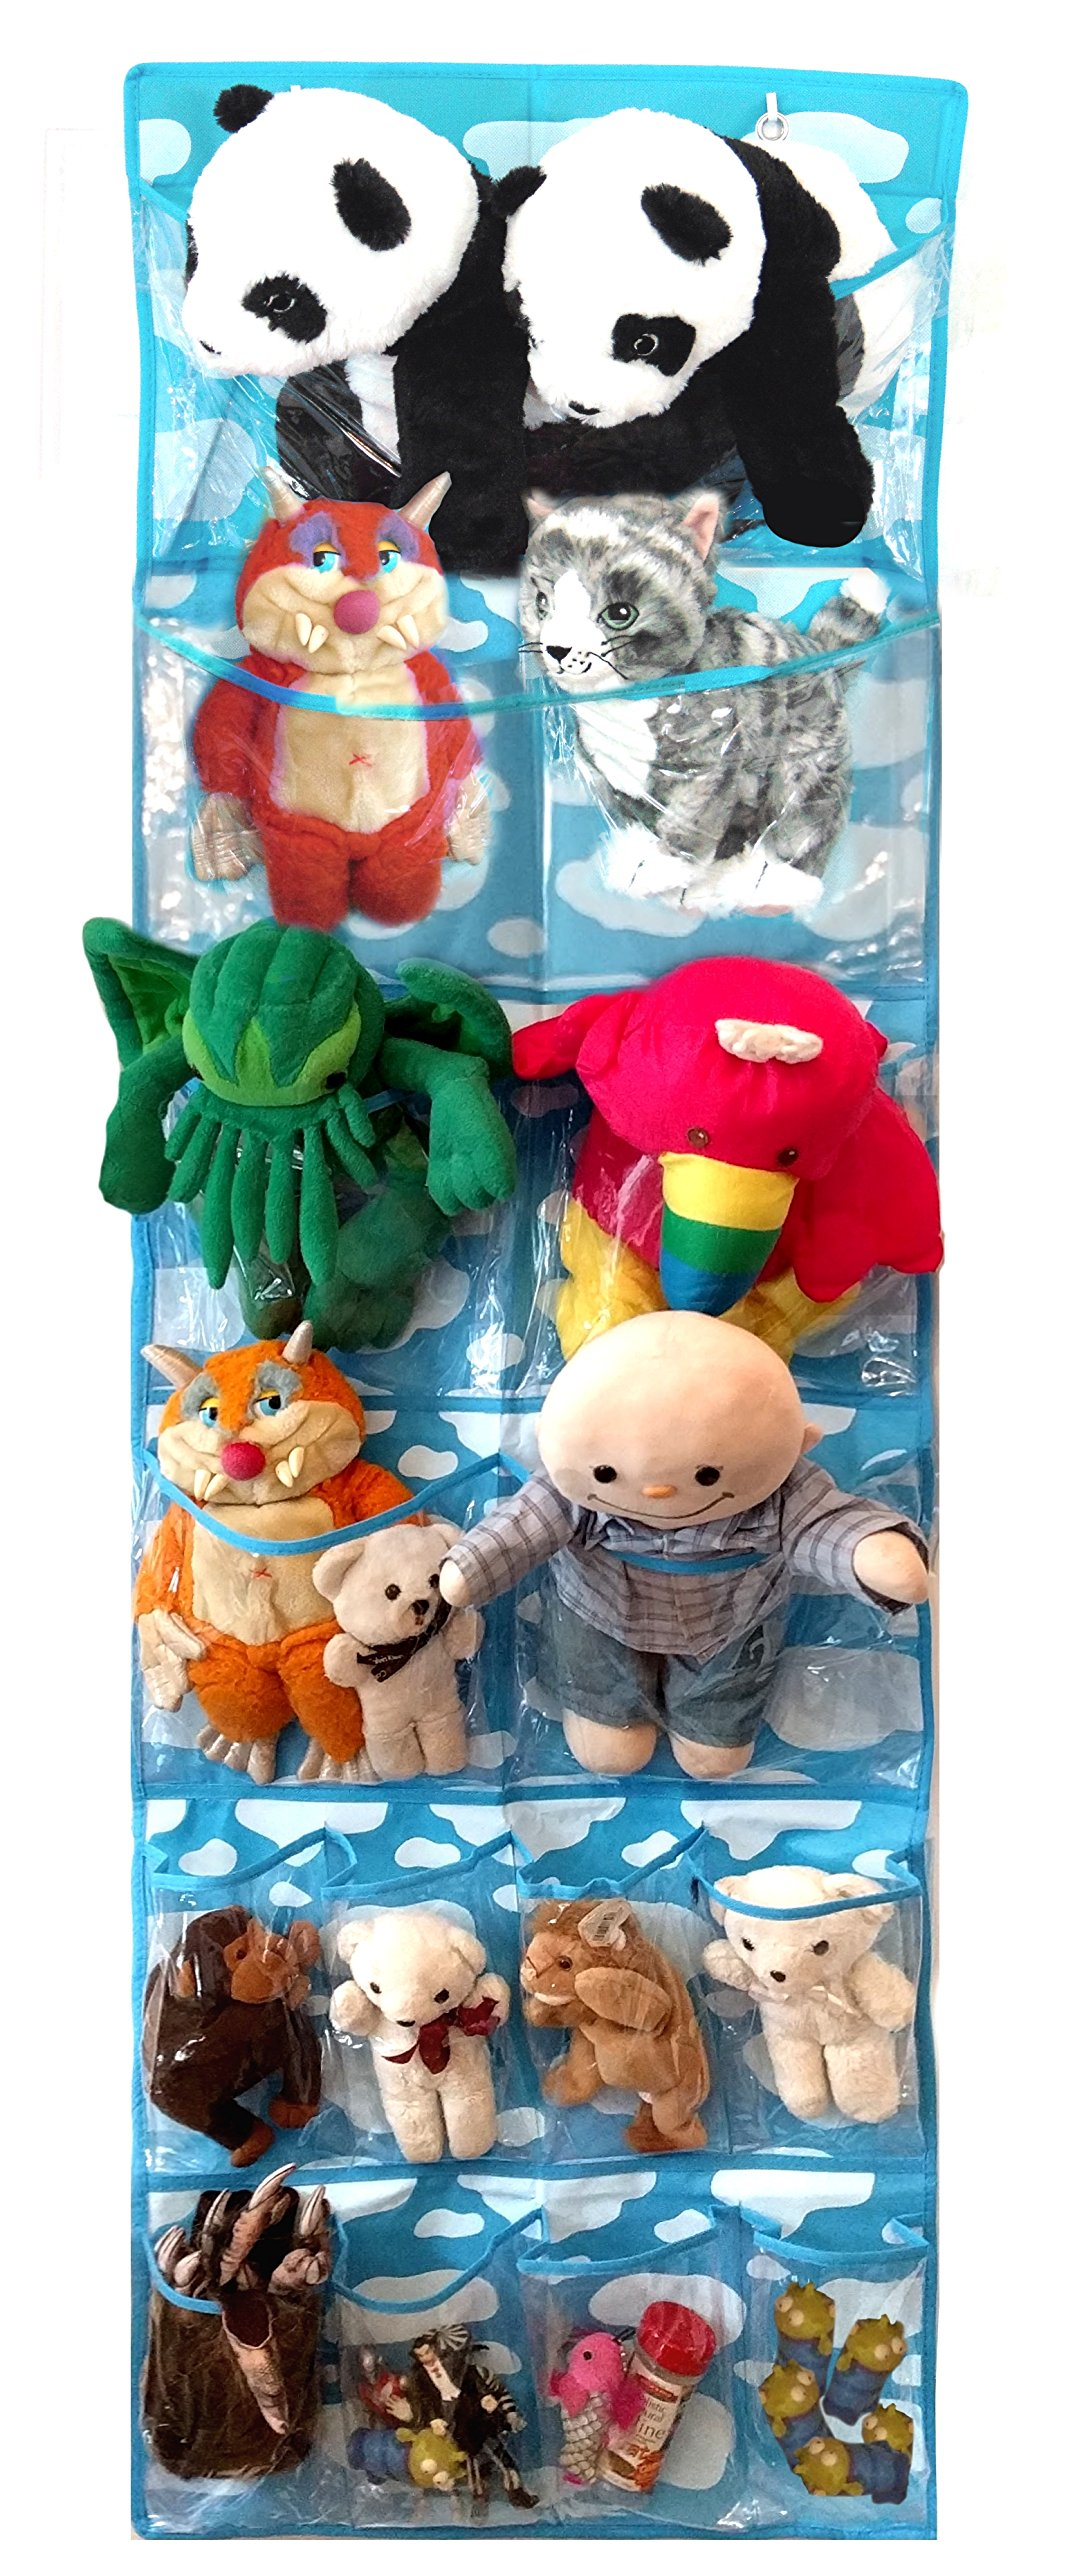 Nursery Hanging Organizer for Toys & Stuffed Animals